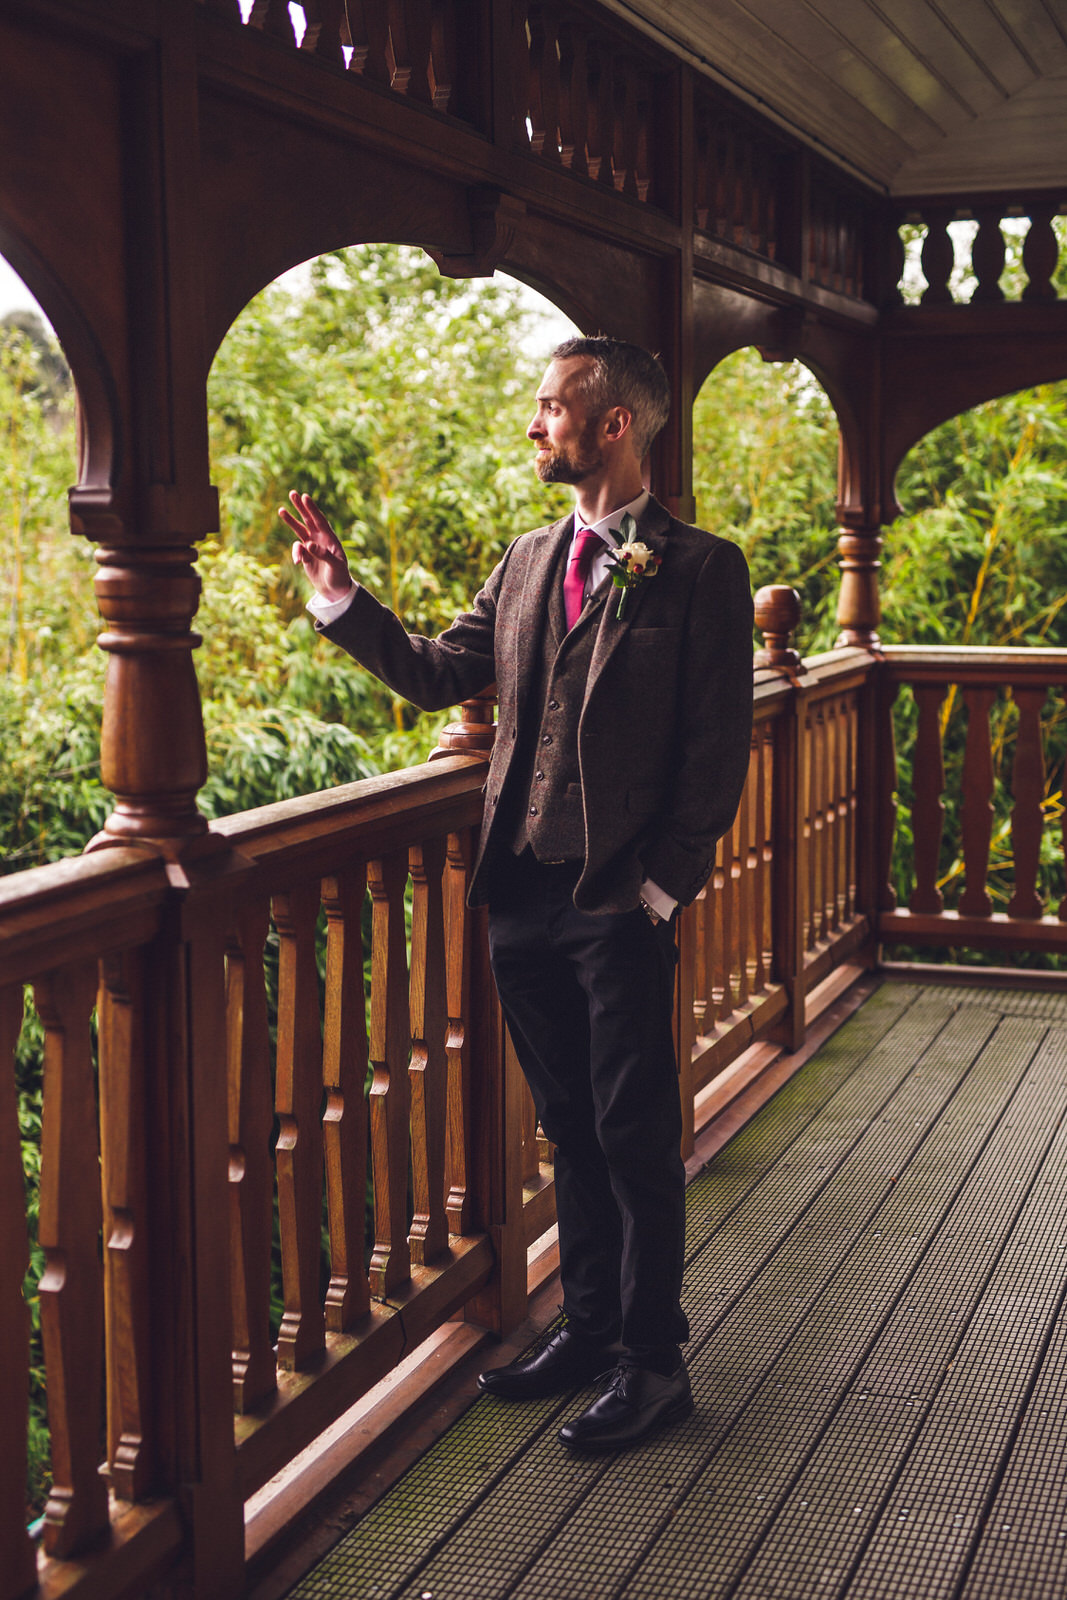 Roger_kenny-wedding-photographer-wicklow-dublin-zoo_016.jpg